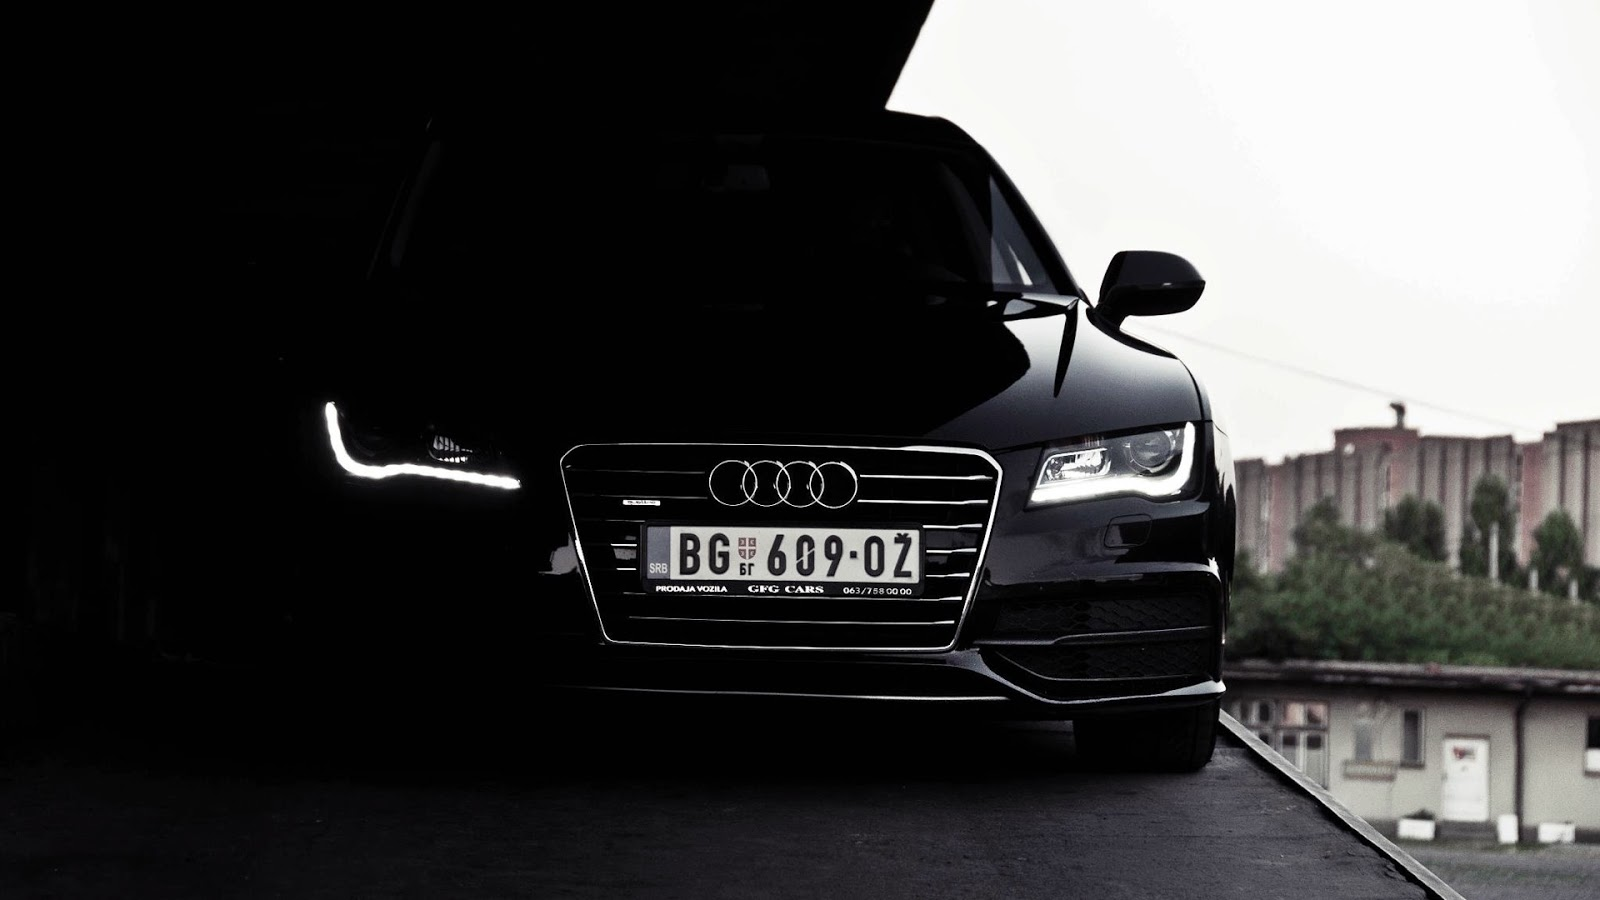 Cool Audi Wallpaper